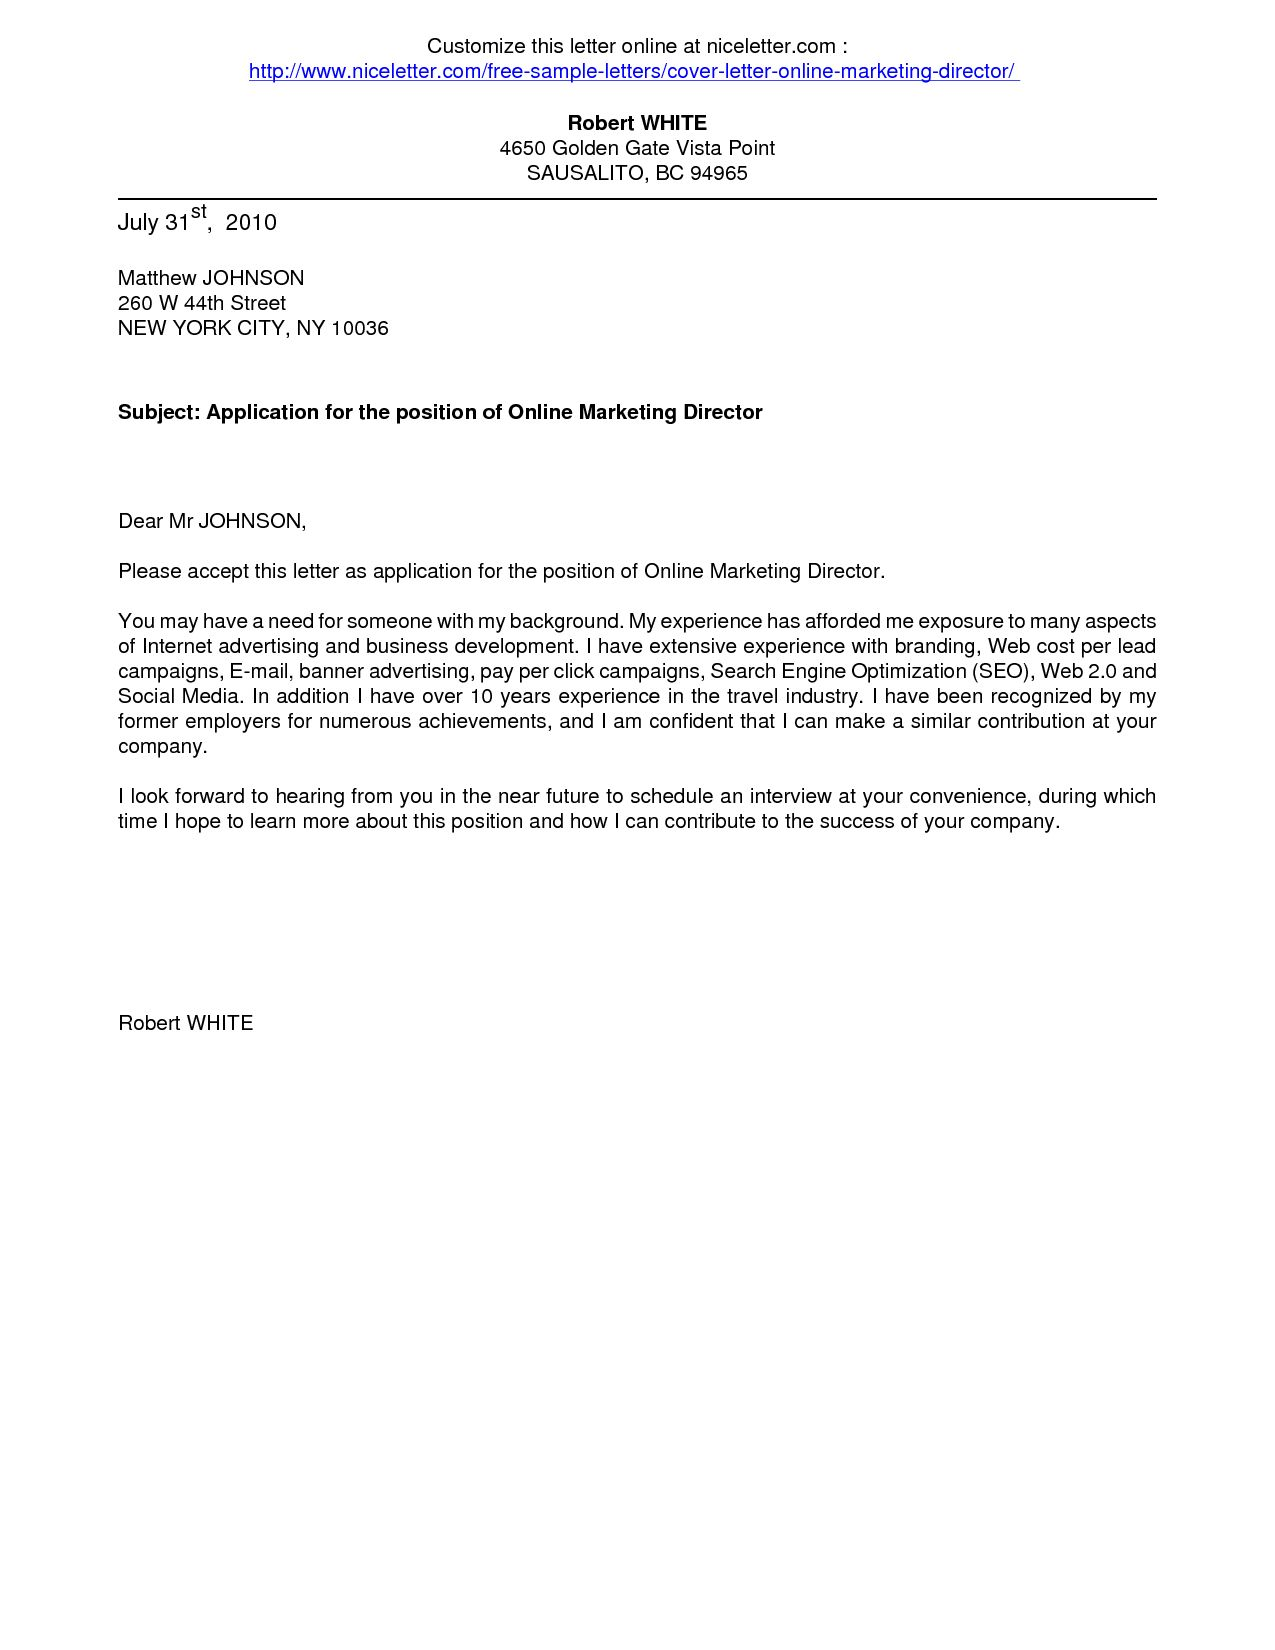 cover letter sample pdf lettering for resume examples fema inspector should you put your Resume Online Resume Cover Letter Examples